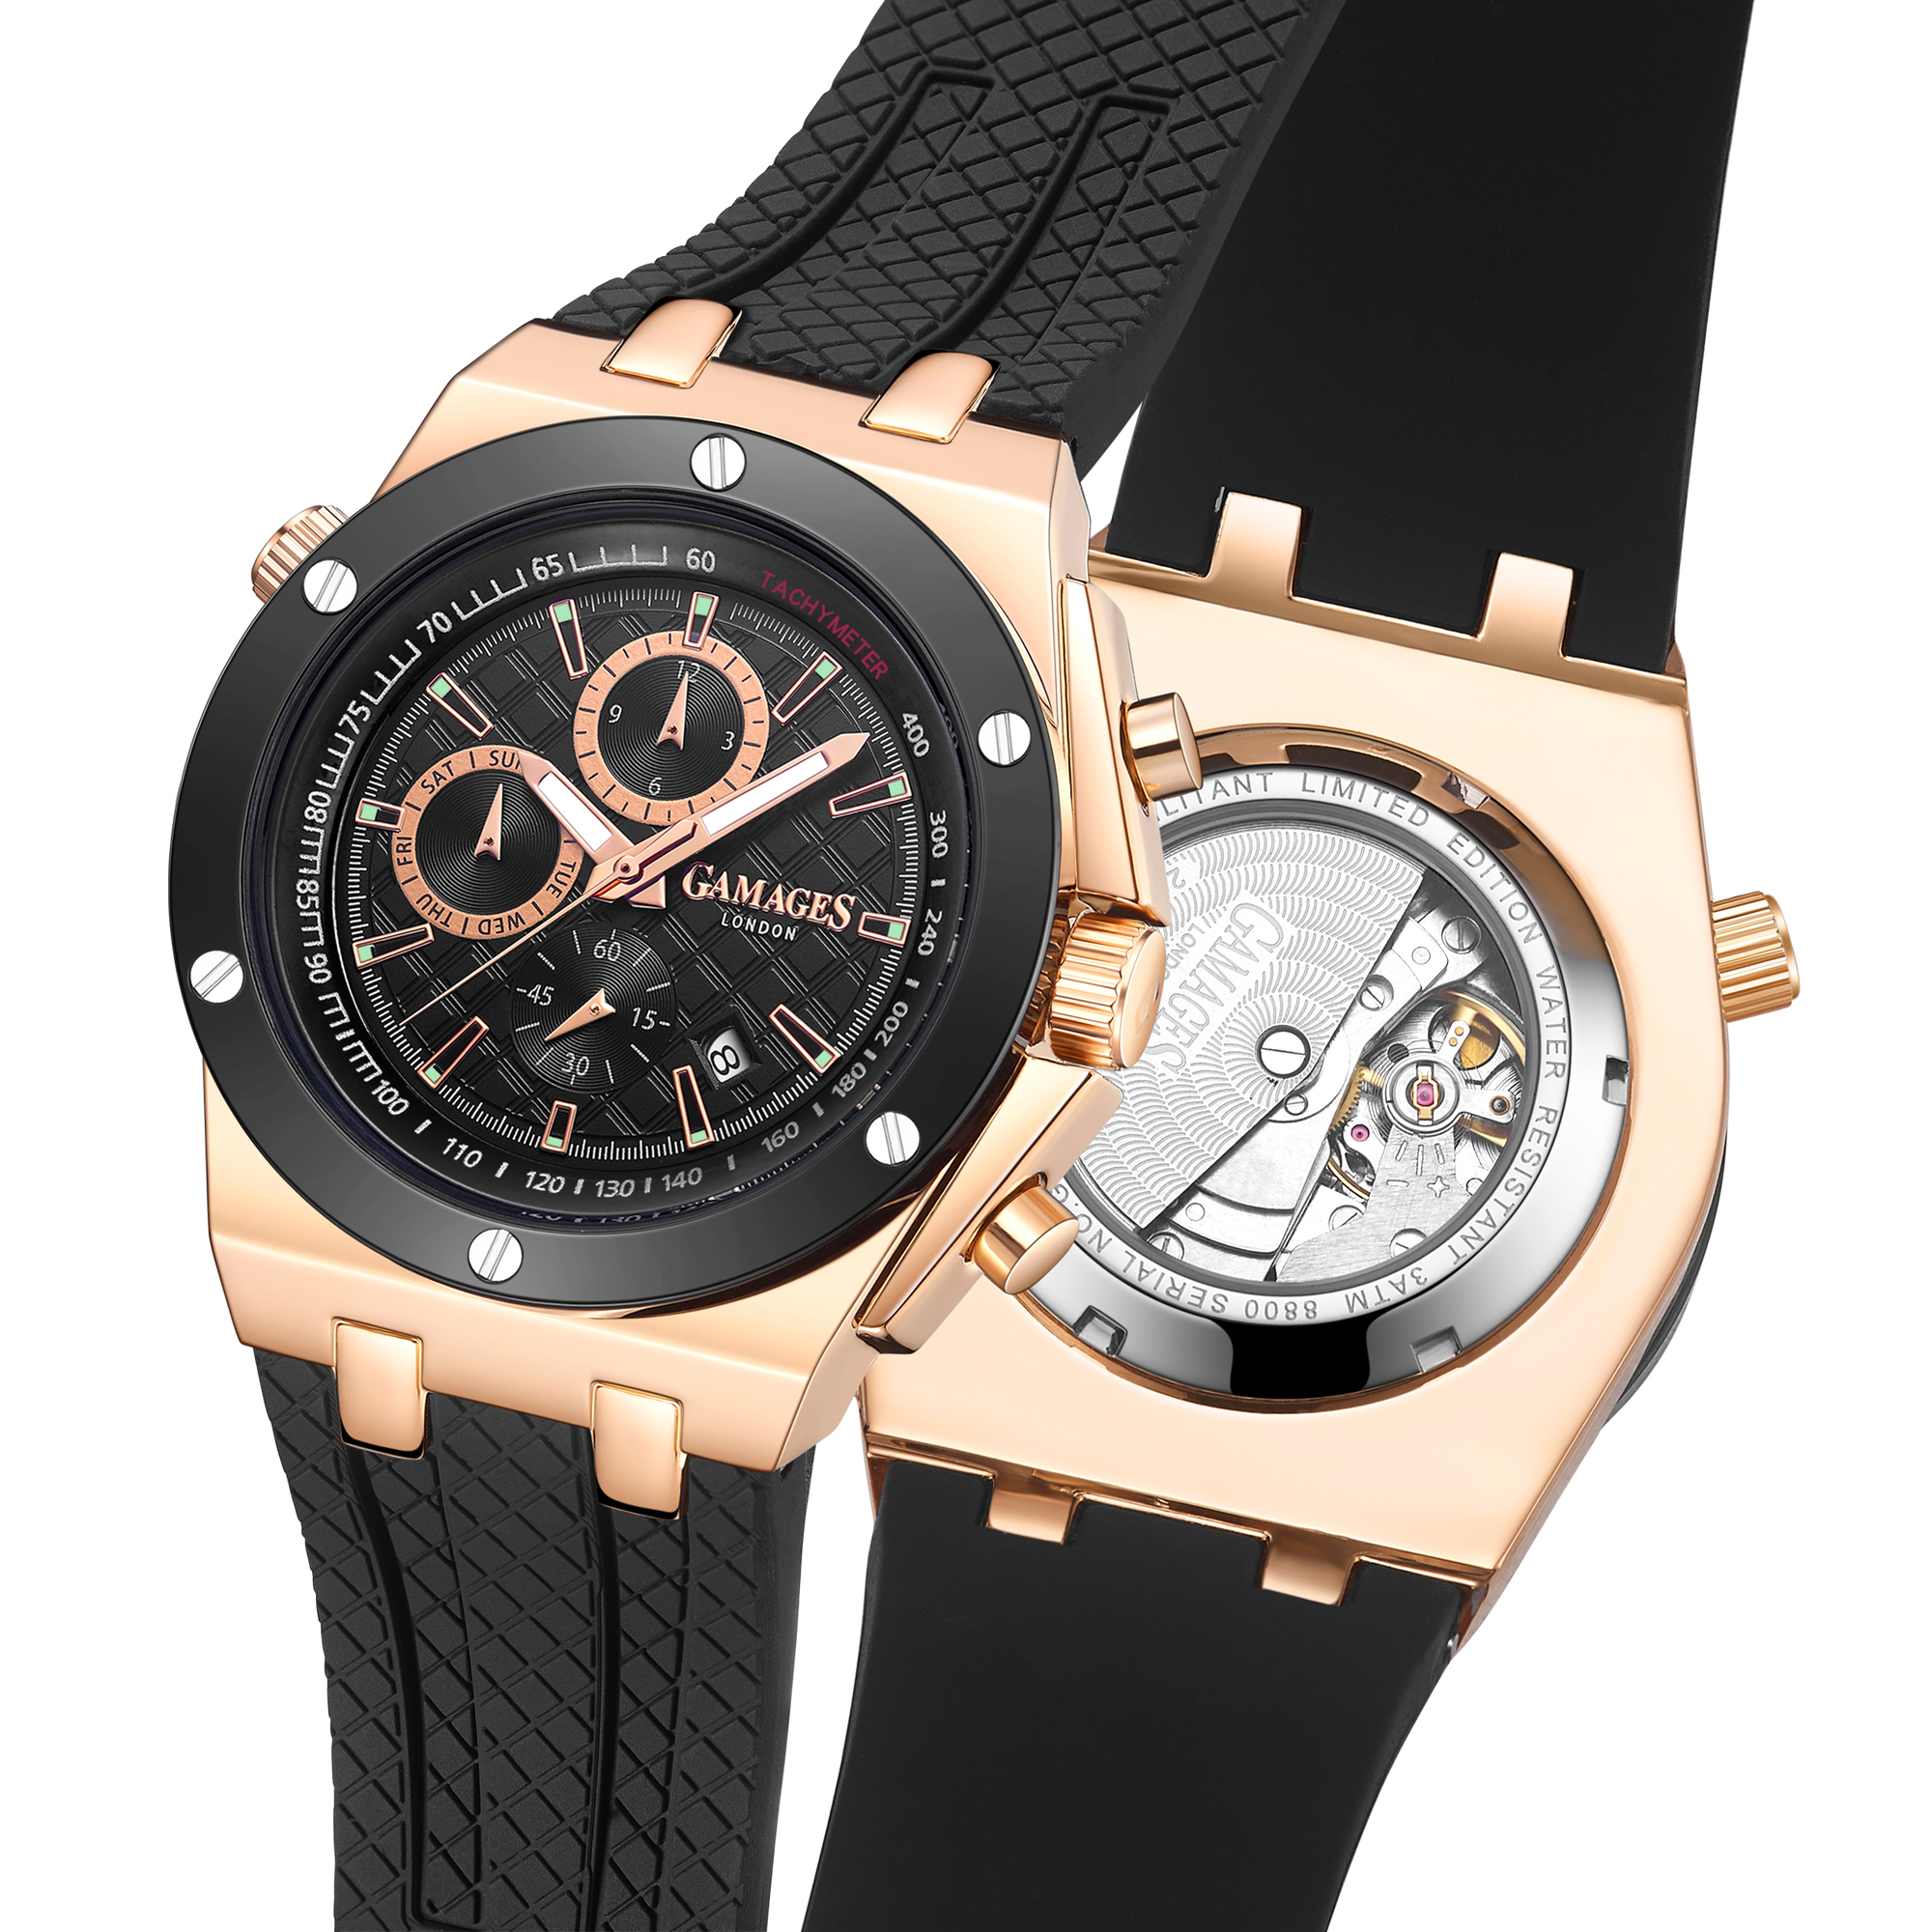 Limited Edition Hand Assembled GAMAGES Militant Automatic Rose – 5 Year Warranty & Free Delivery - Image 4 of 5